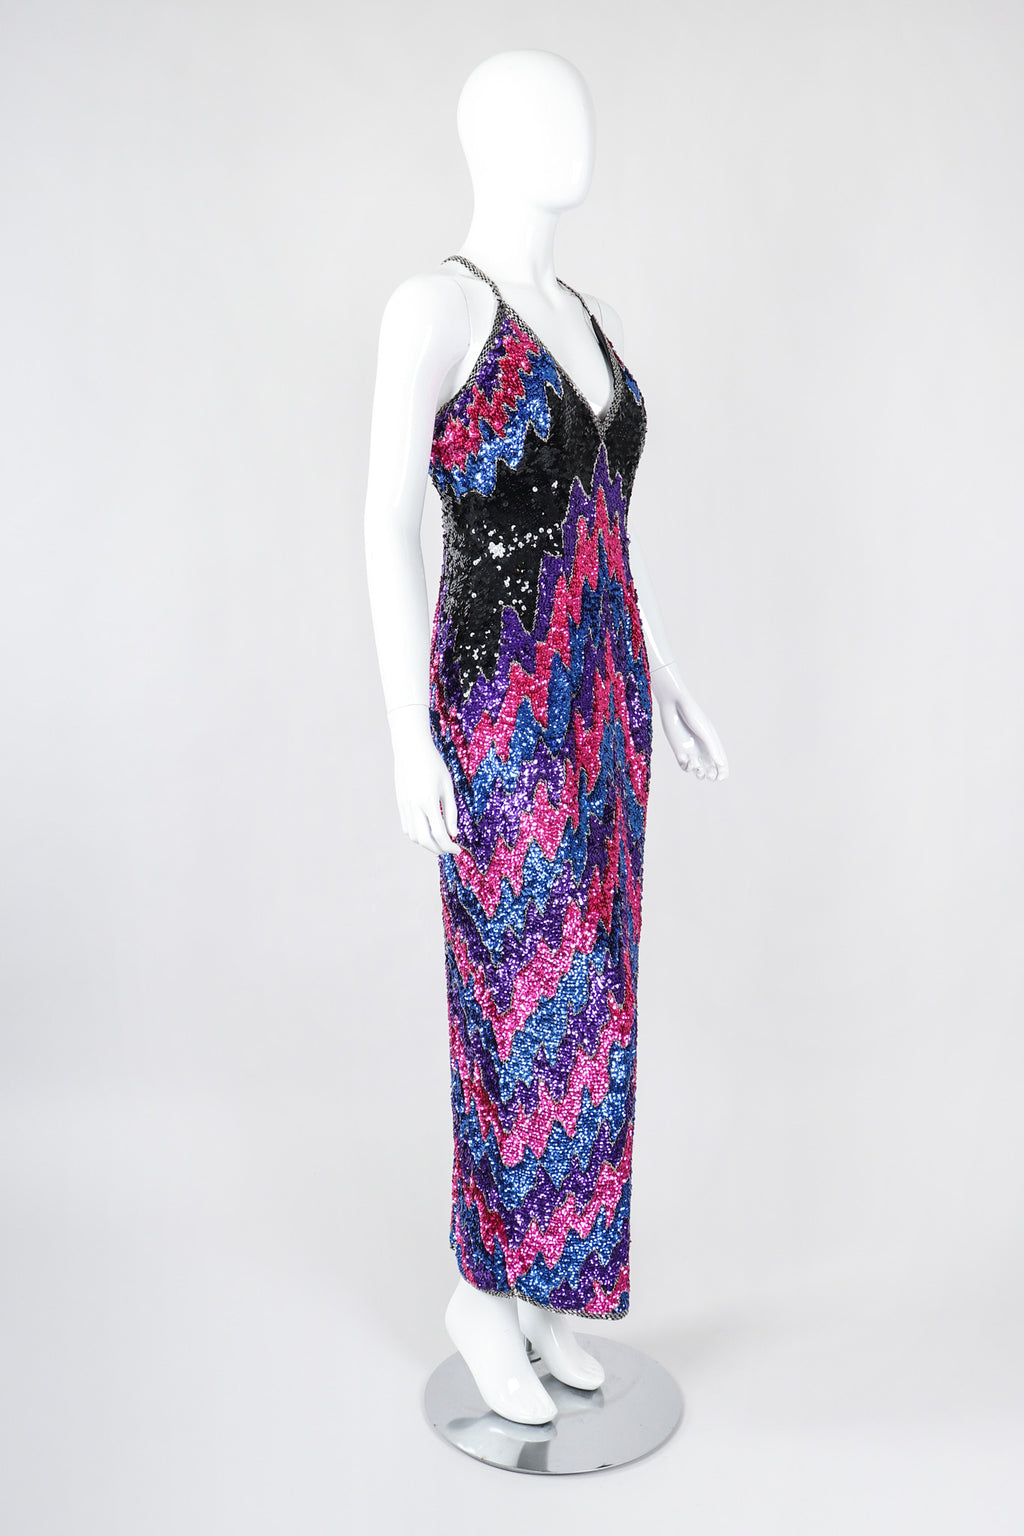 Recess Los Angeles Vintage Shomax Melted Chevron Sequin Dress